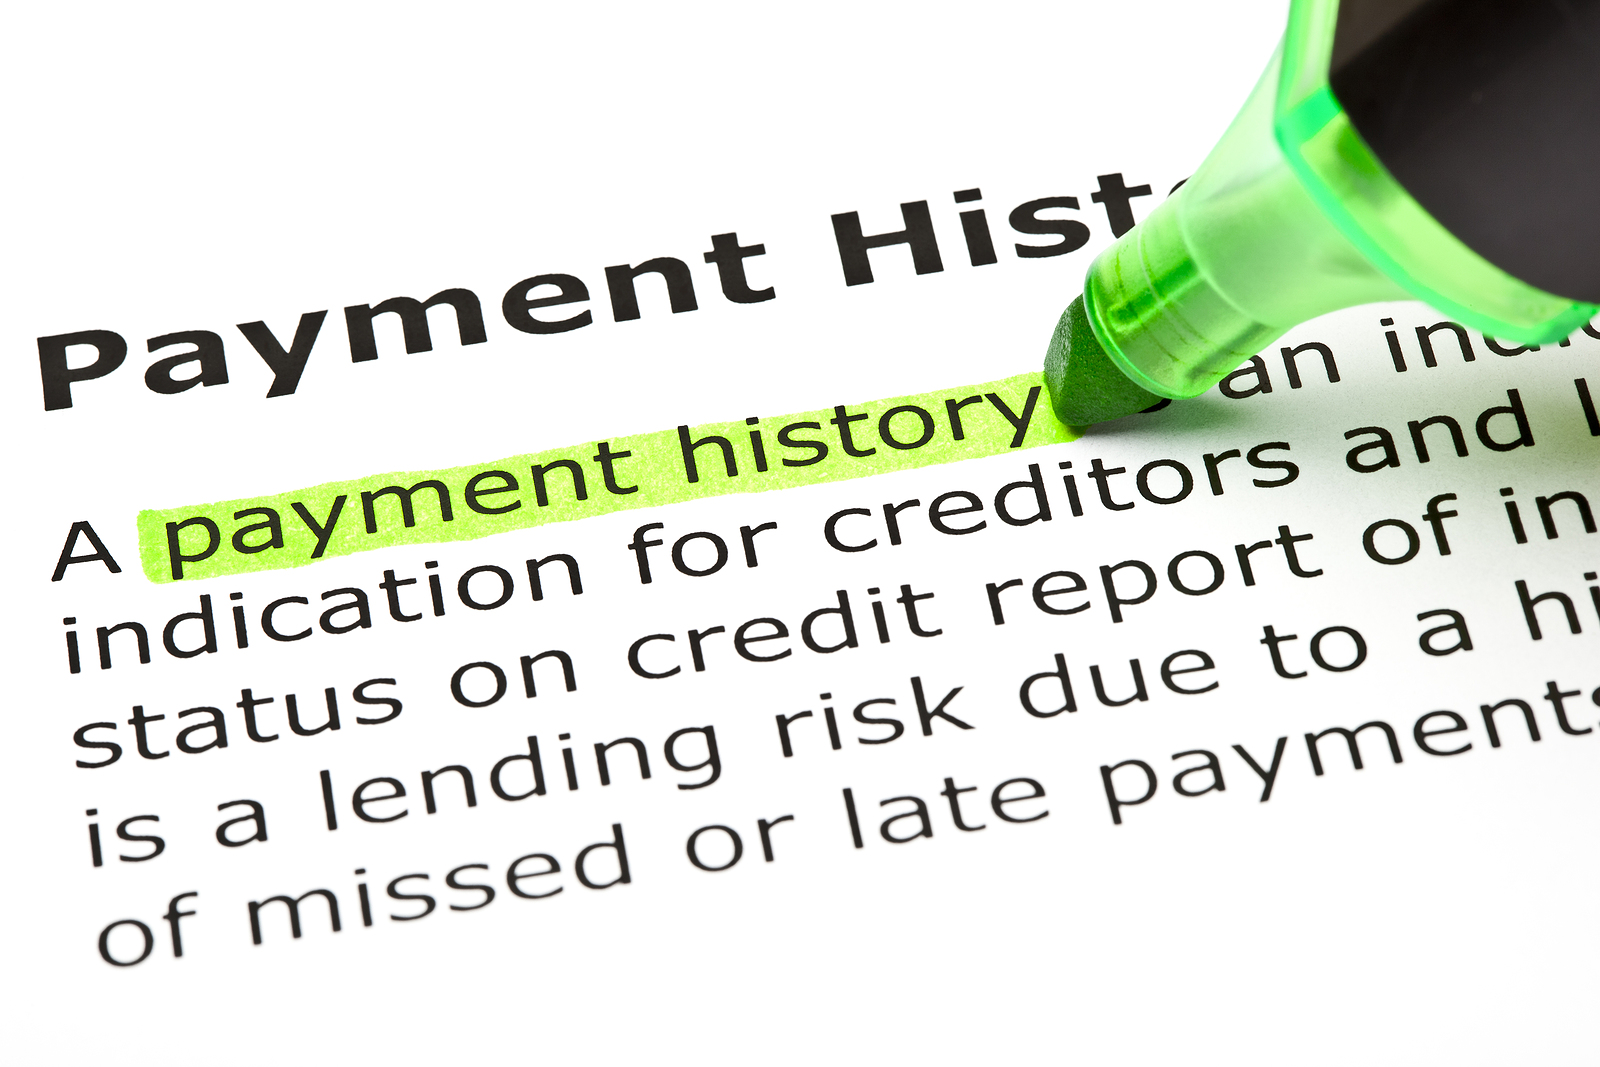 When & How to Use a Payday Lender & Other Financial Tips